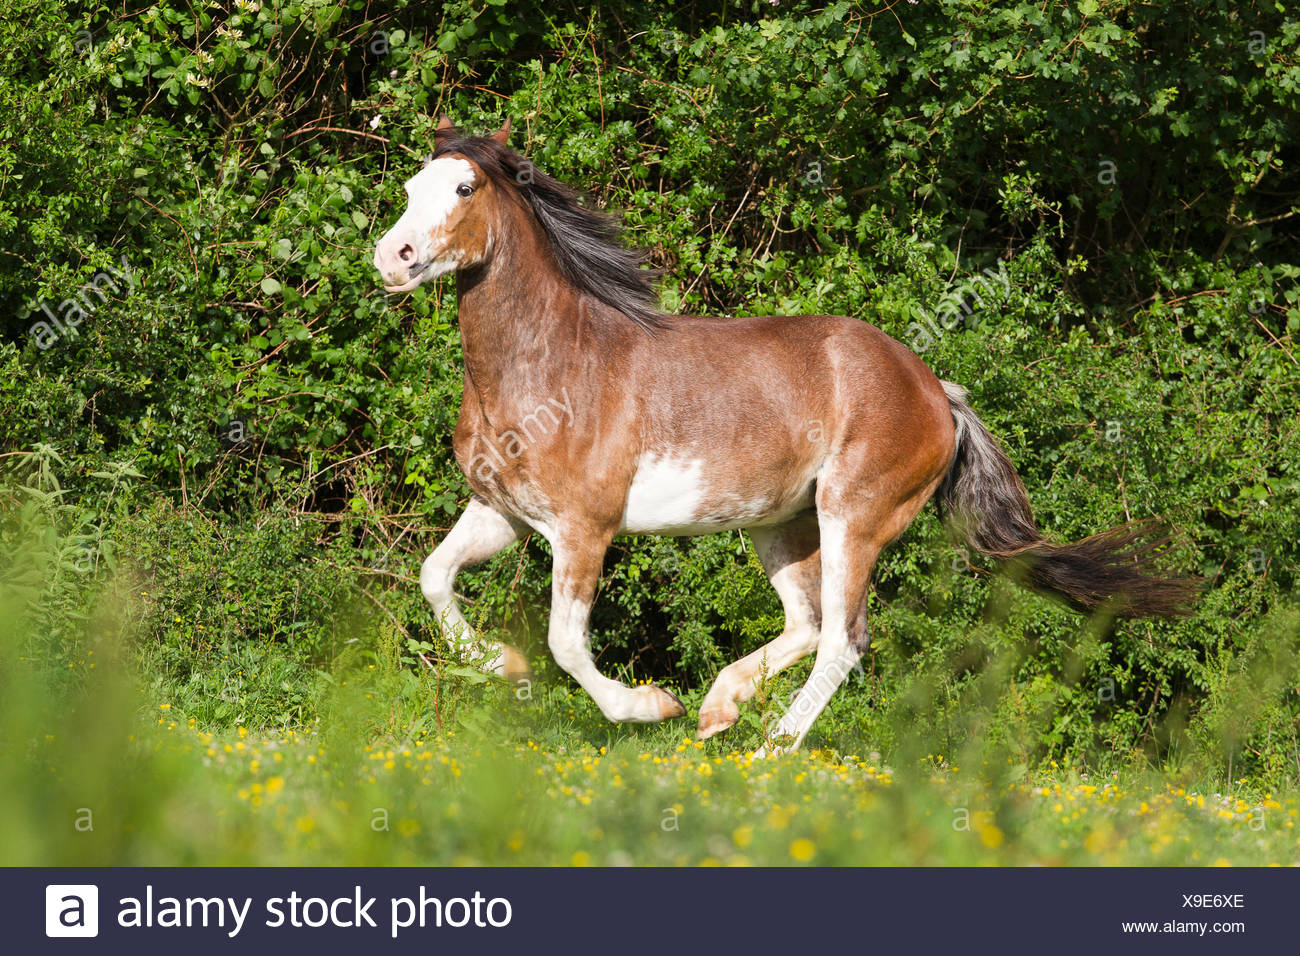 Criollo Strawberry roan mare galloping pasture - Stock Image